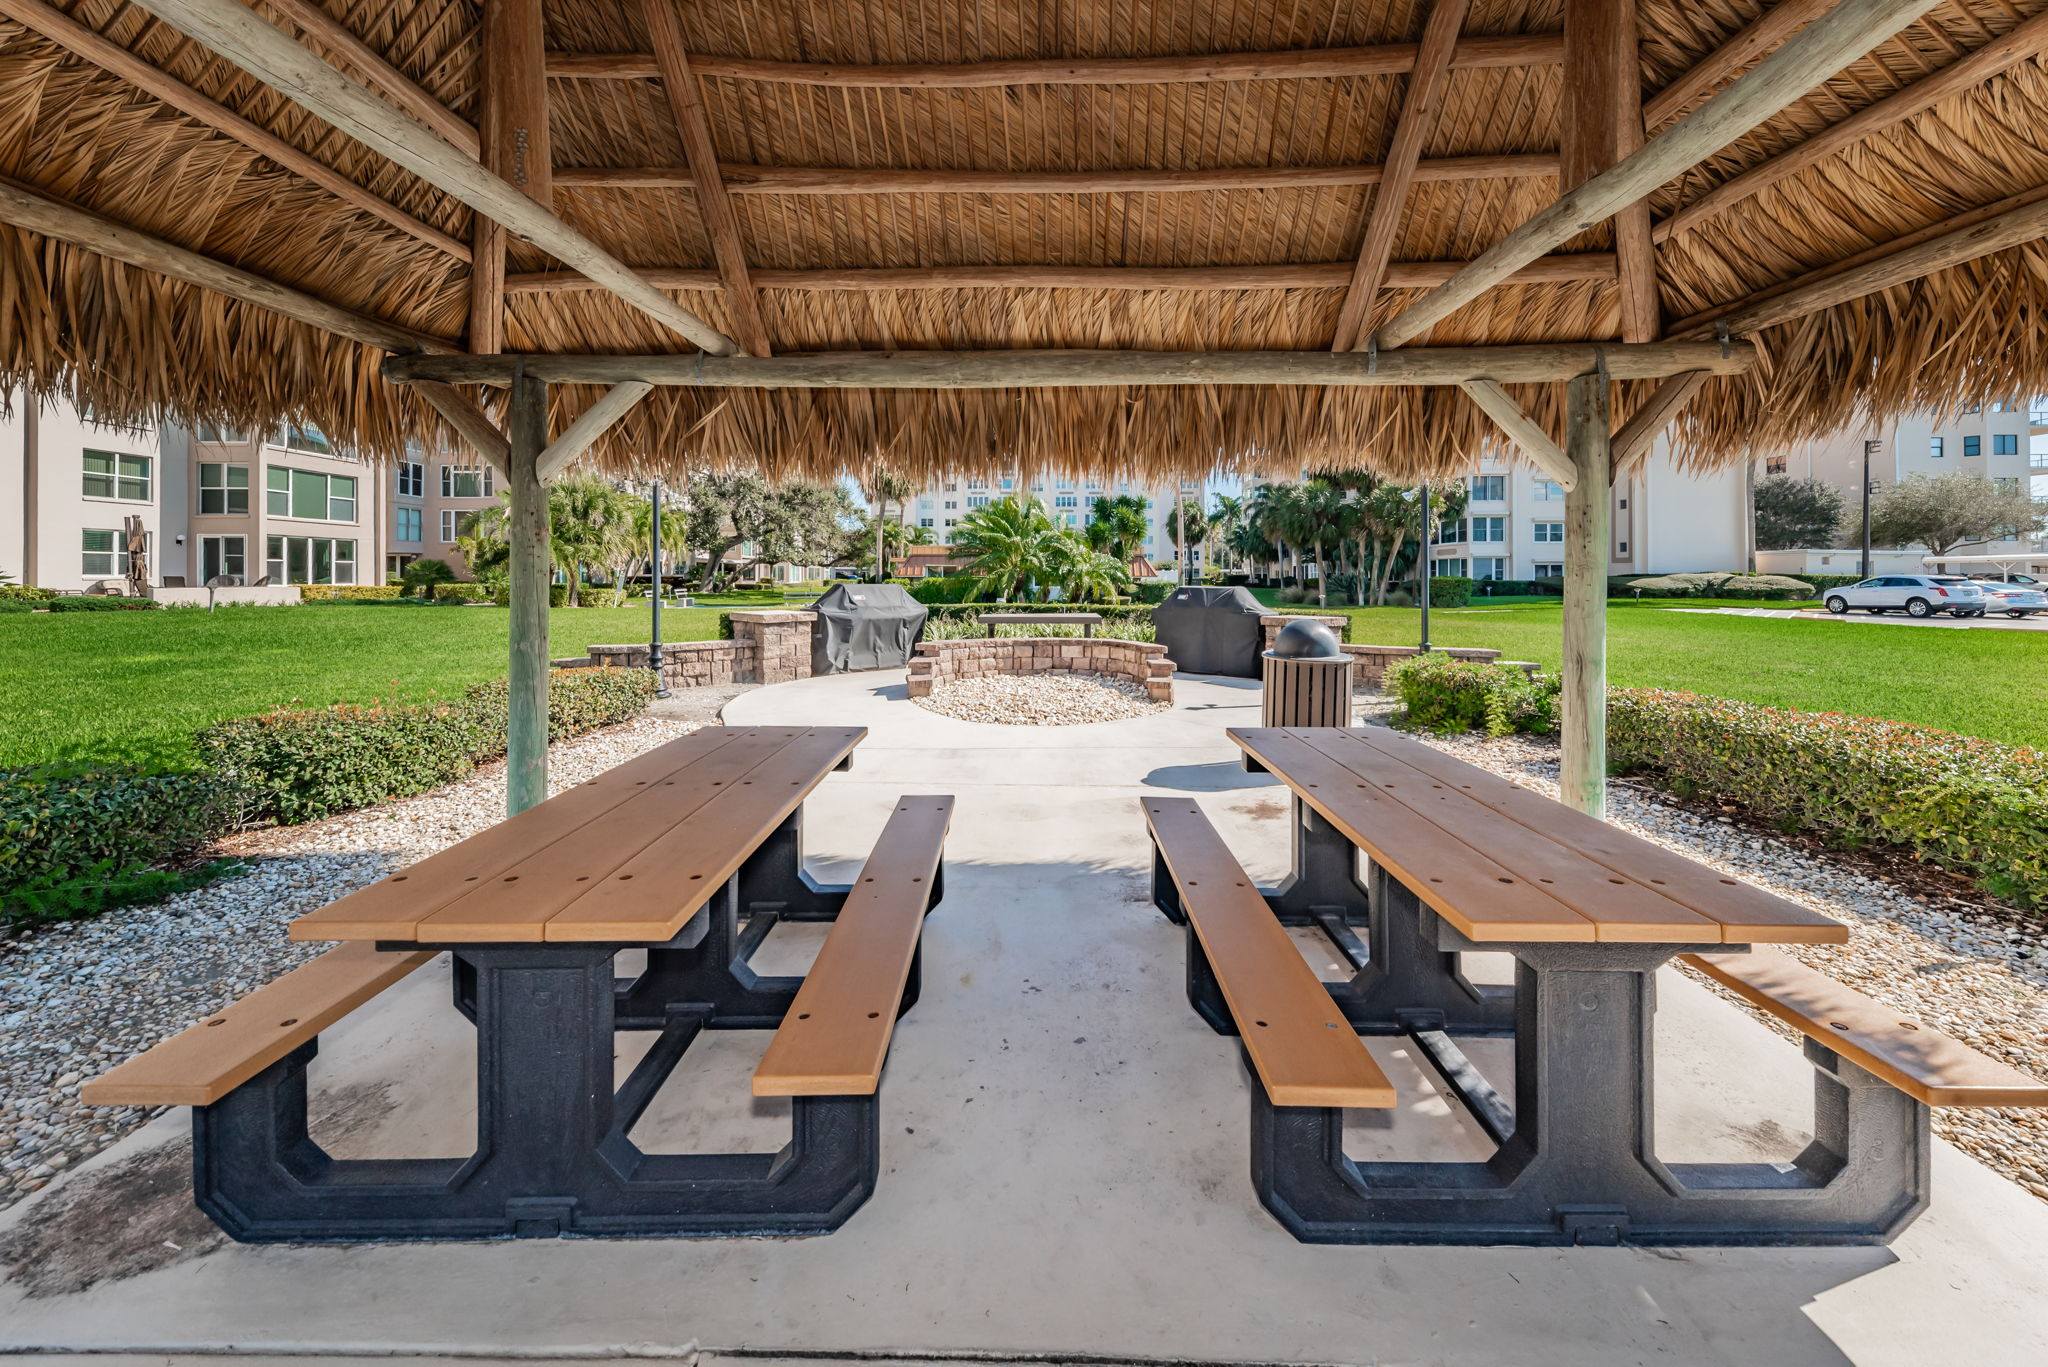 56-Gazebo and Grilling Area3